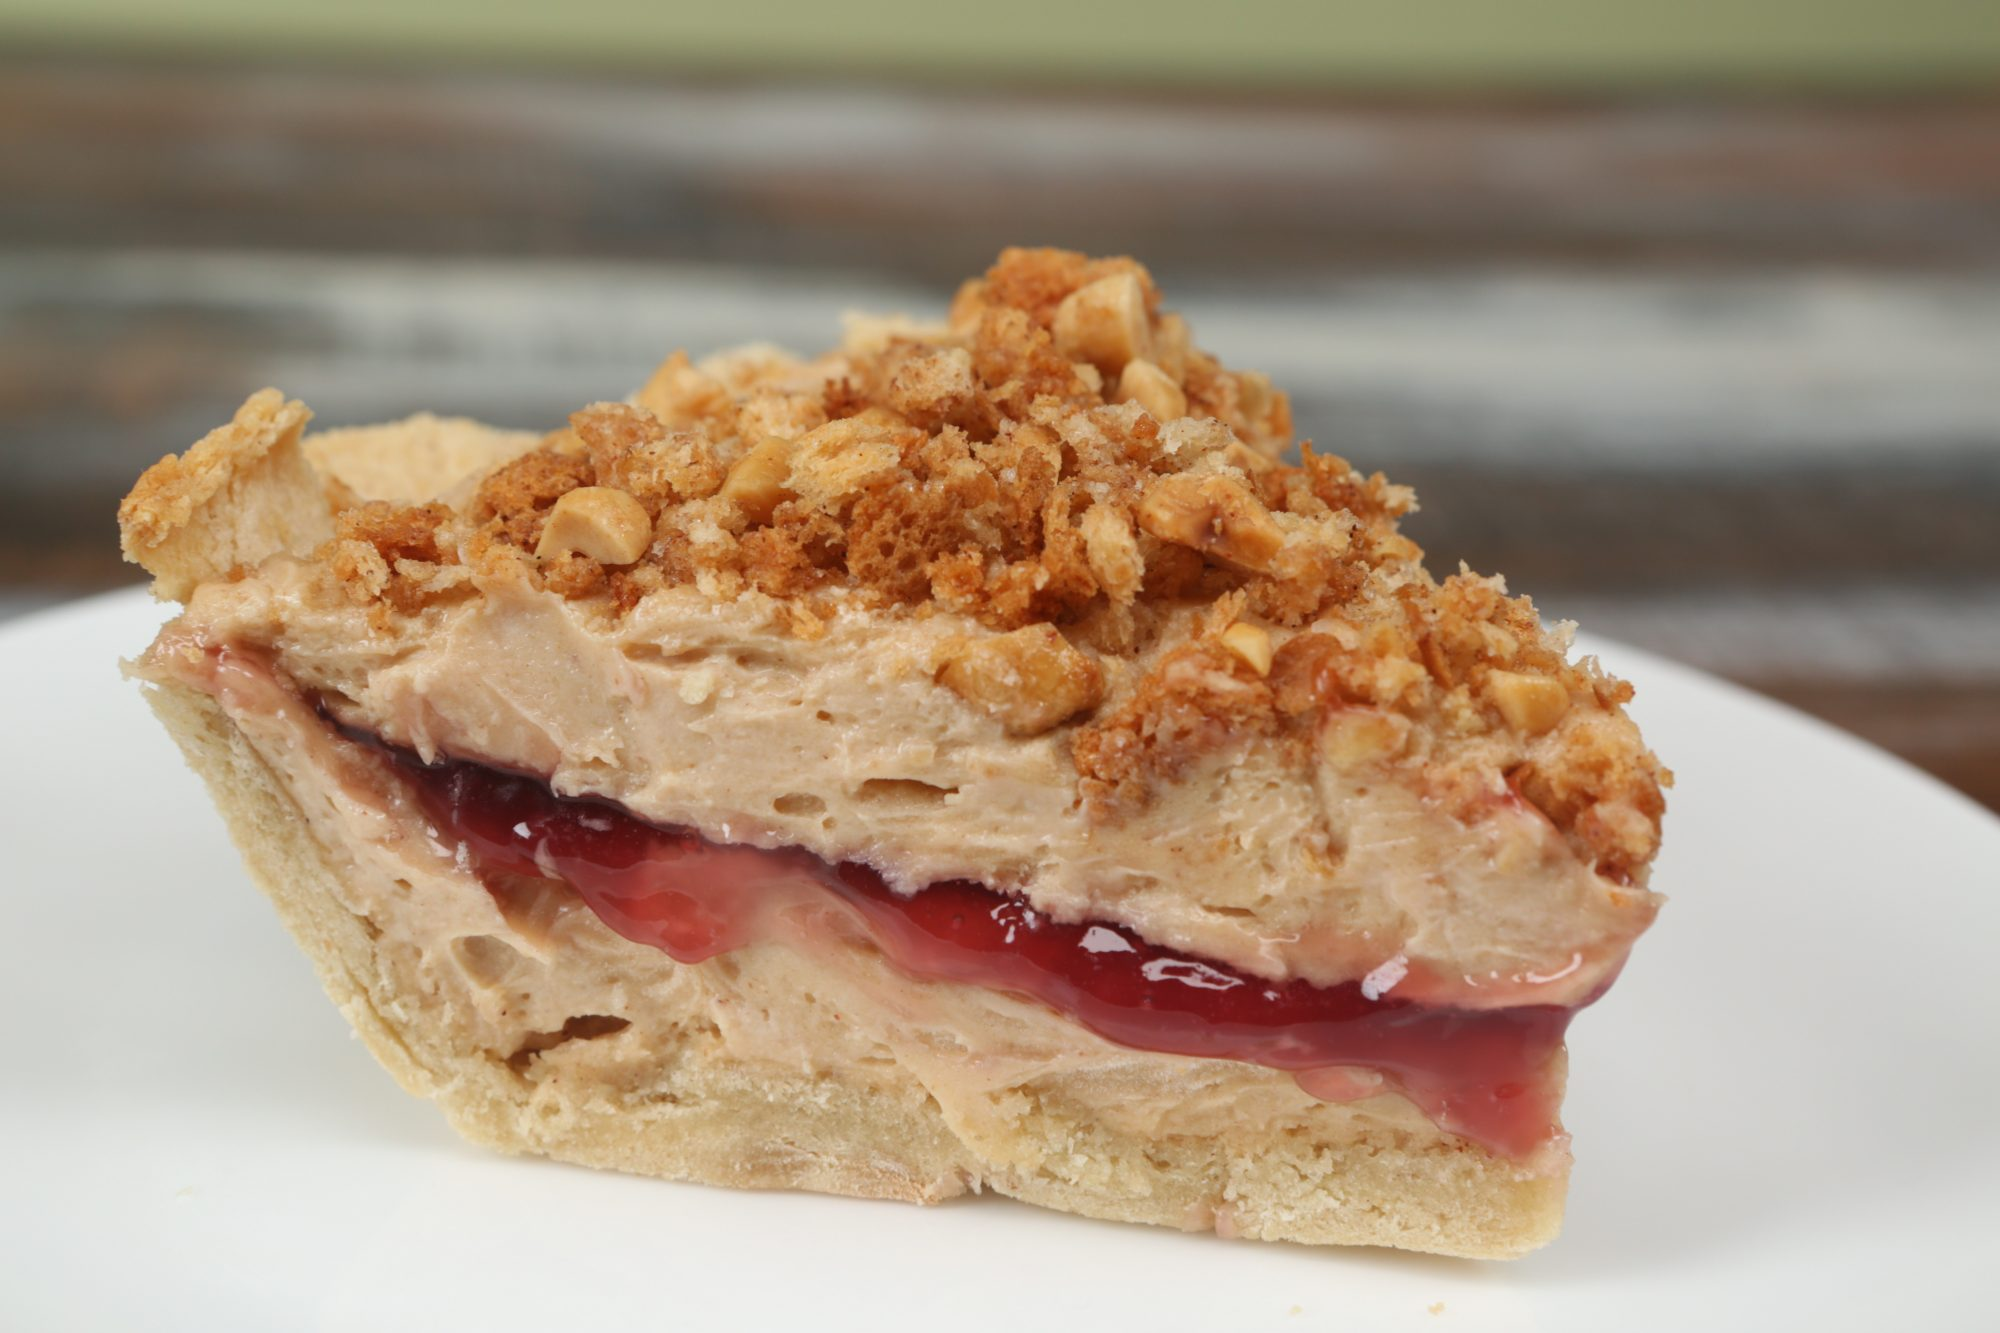 Peanut Butter and Jelly Sandwich Pie